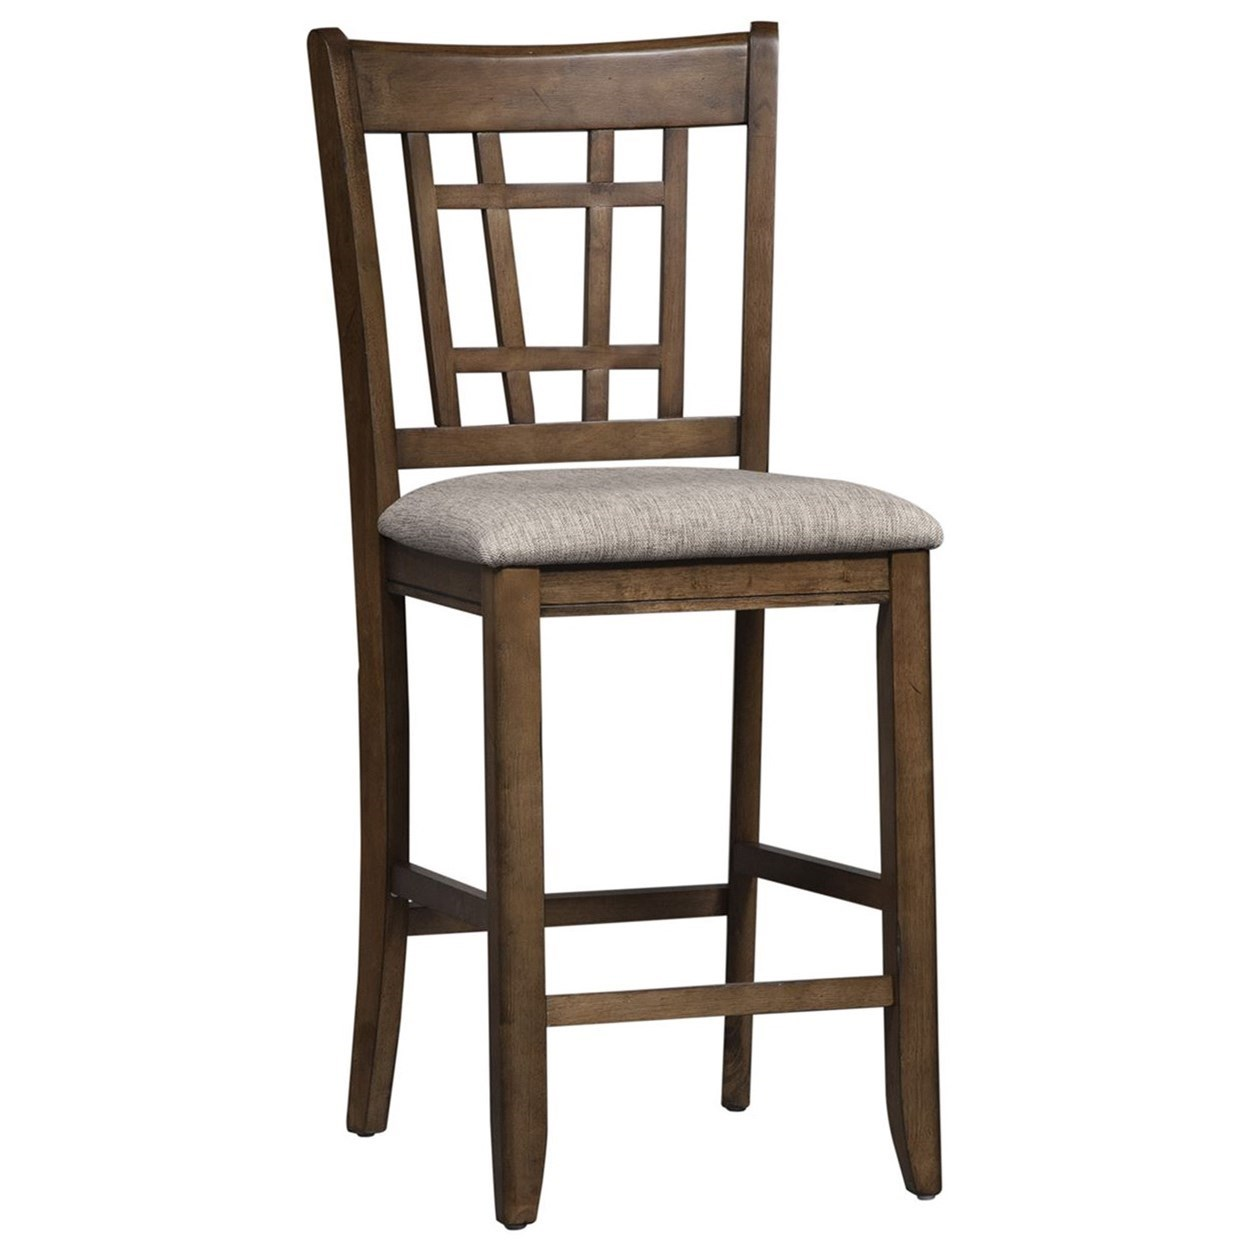 Santa Rosa II Lattice Back Counter Height Chair by Libby at Walker's Furniture